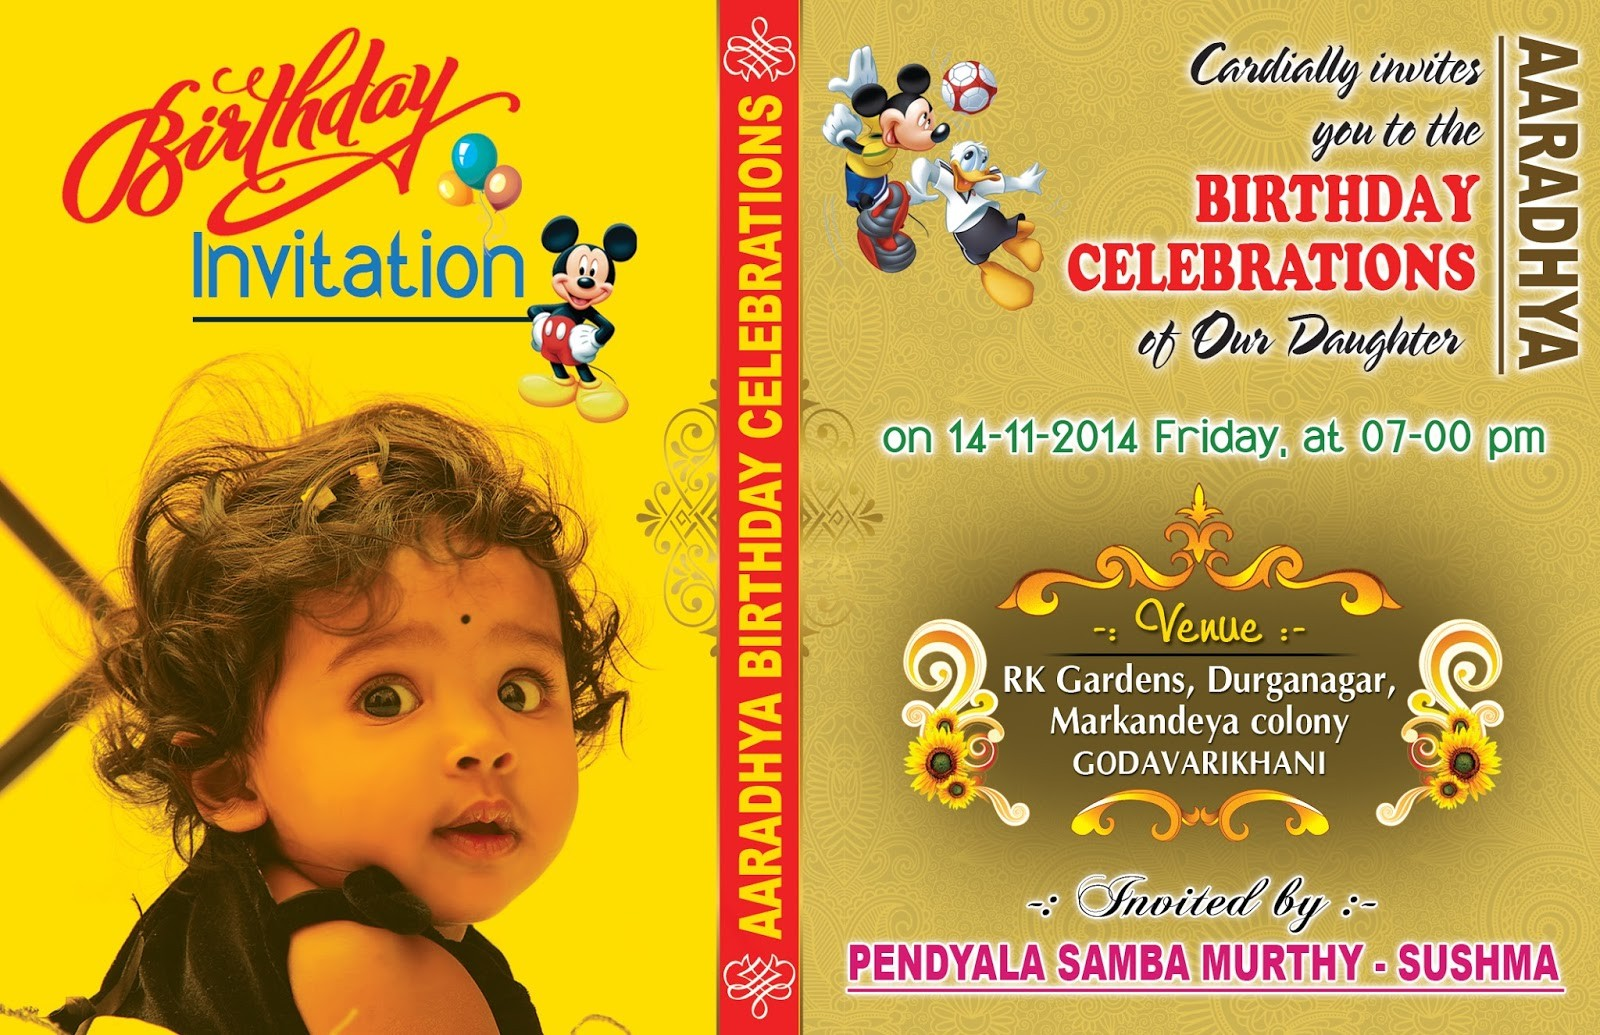 1st birthday invitation card design ; sample-of-invitation-card-for-1st-birthday-best-of-1st-birthday-invitation-card-design-free-yourweek-18356aeca25e